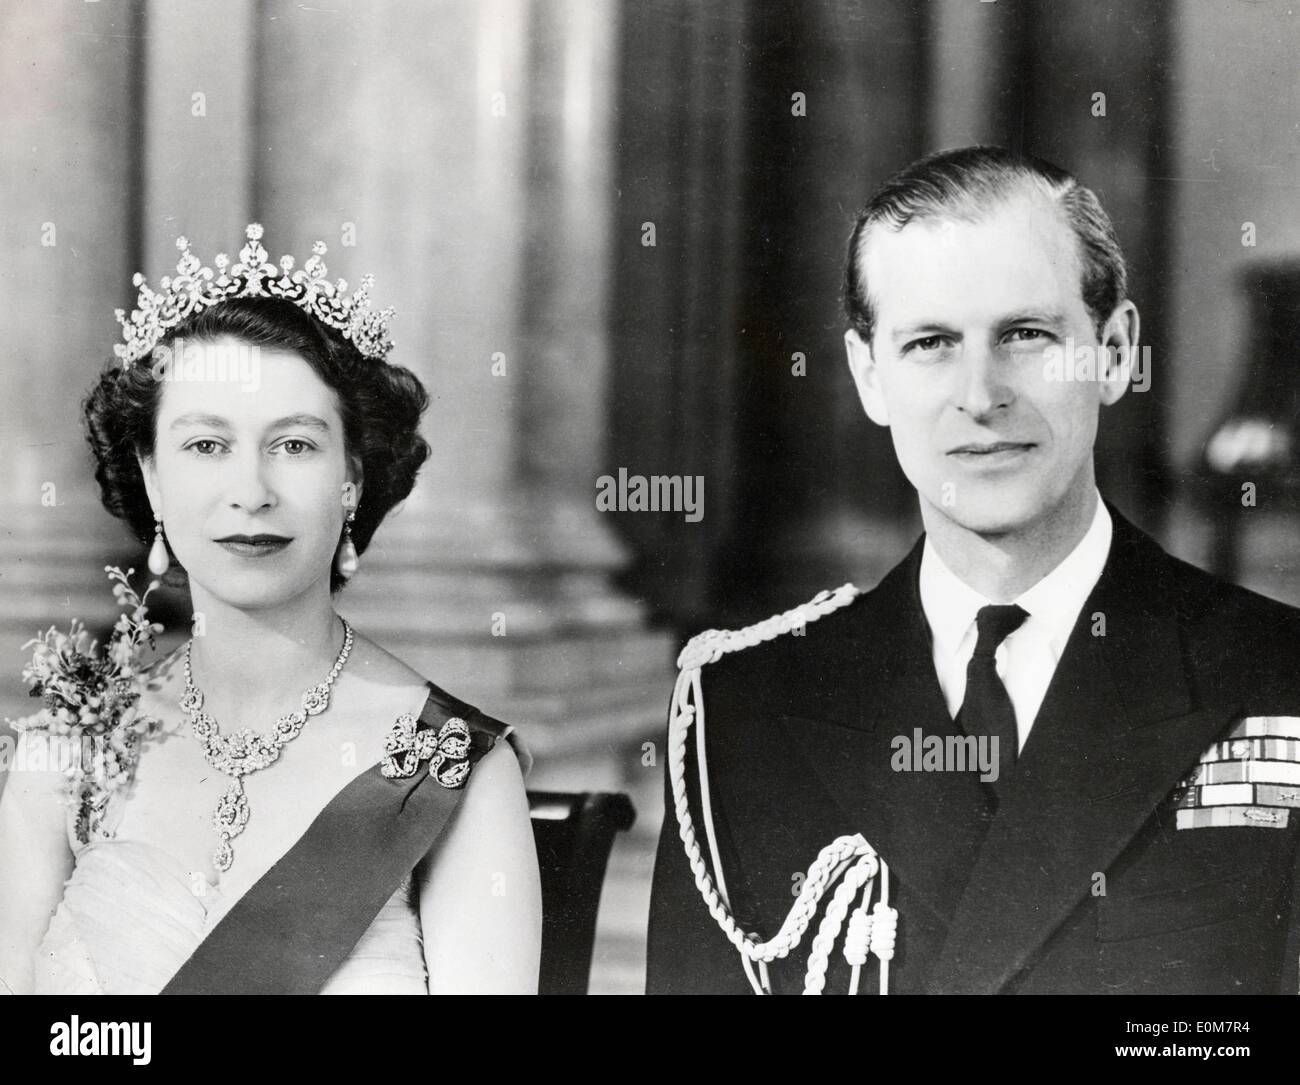 The History Of Englands Crown Jewels